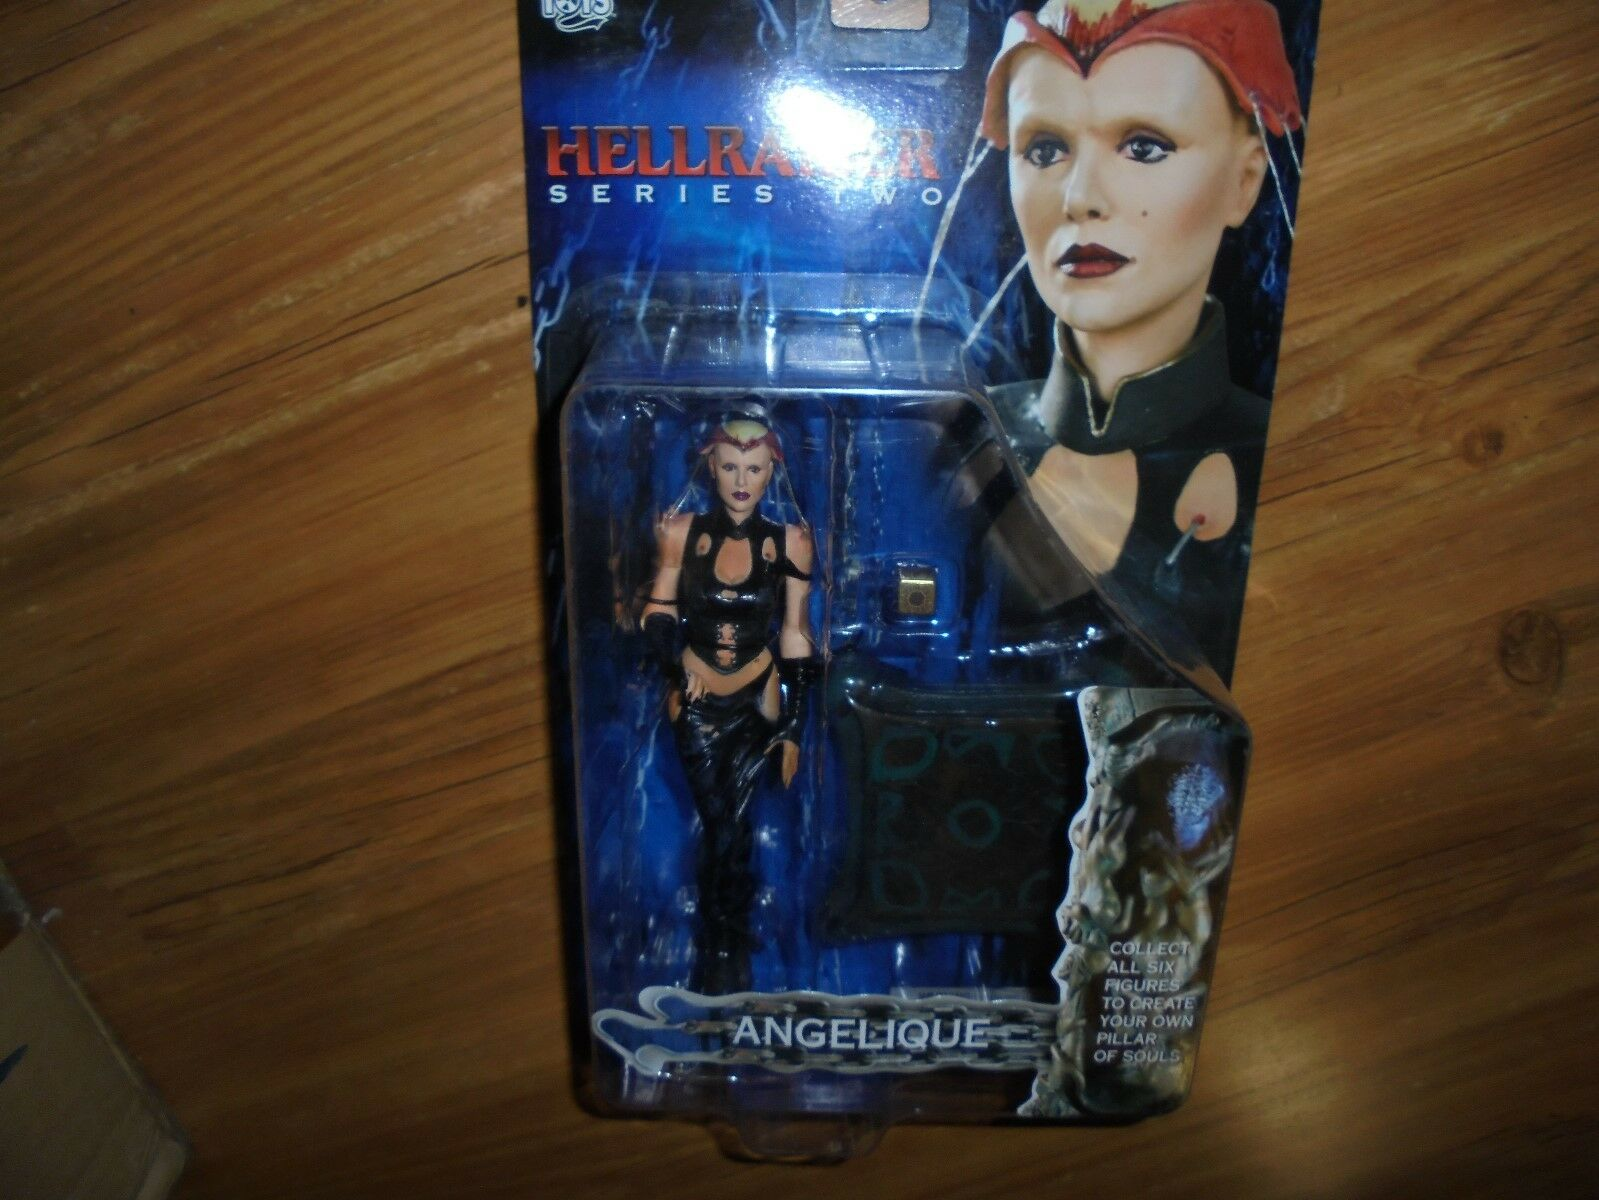 Hellraiser Series 2  ANGELIQUE  Action Figure  NECA 2003